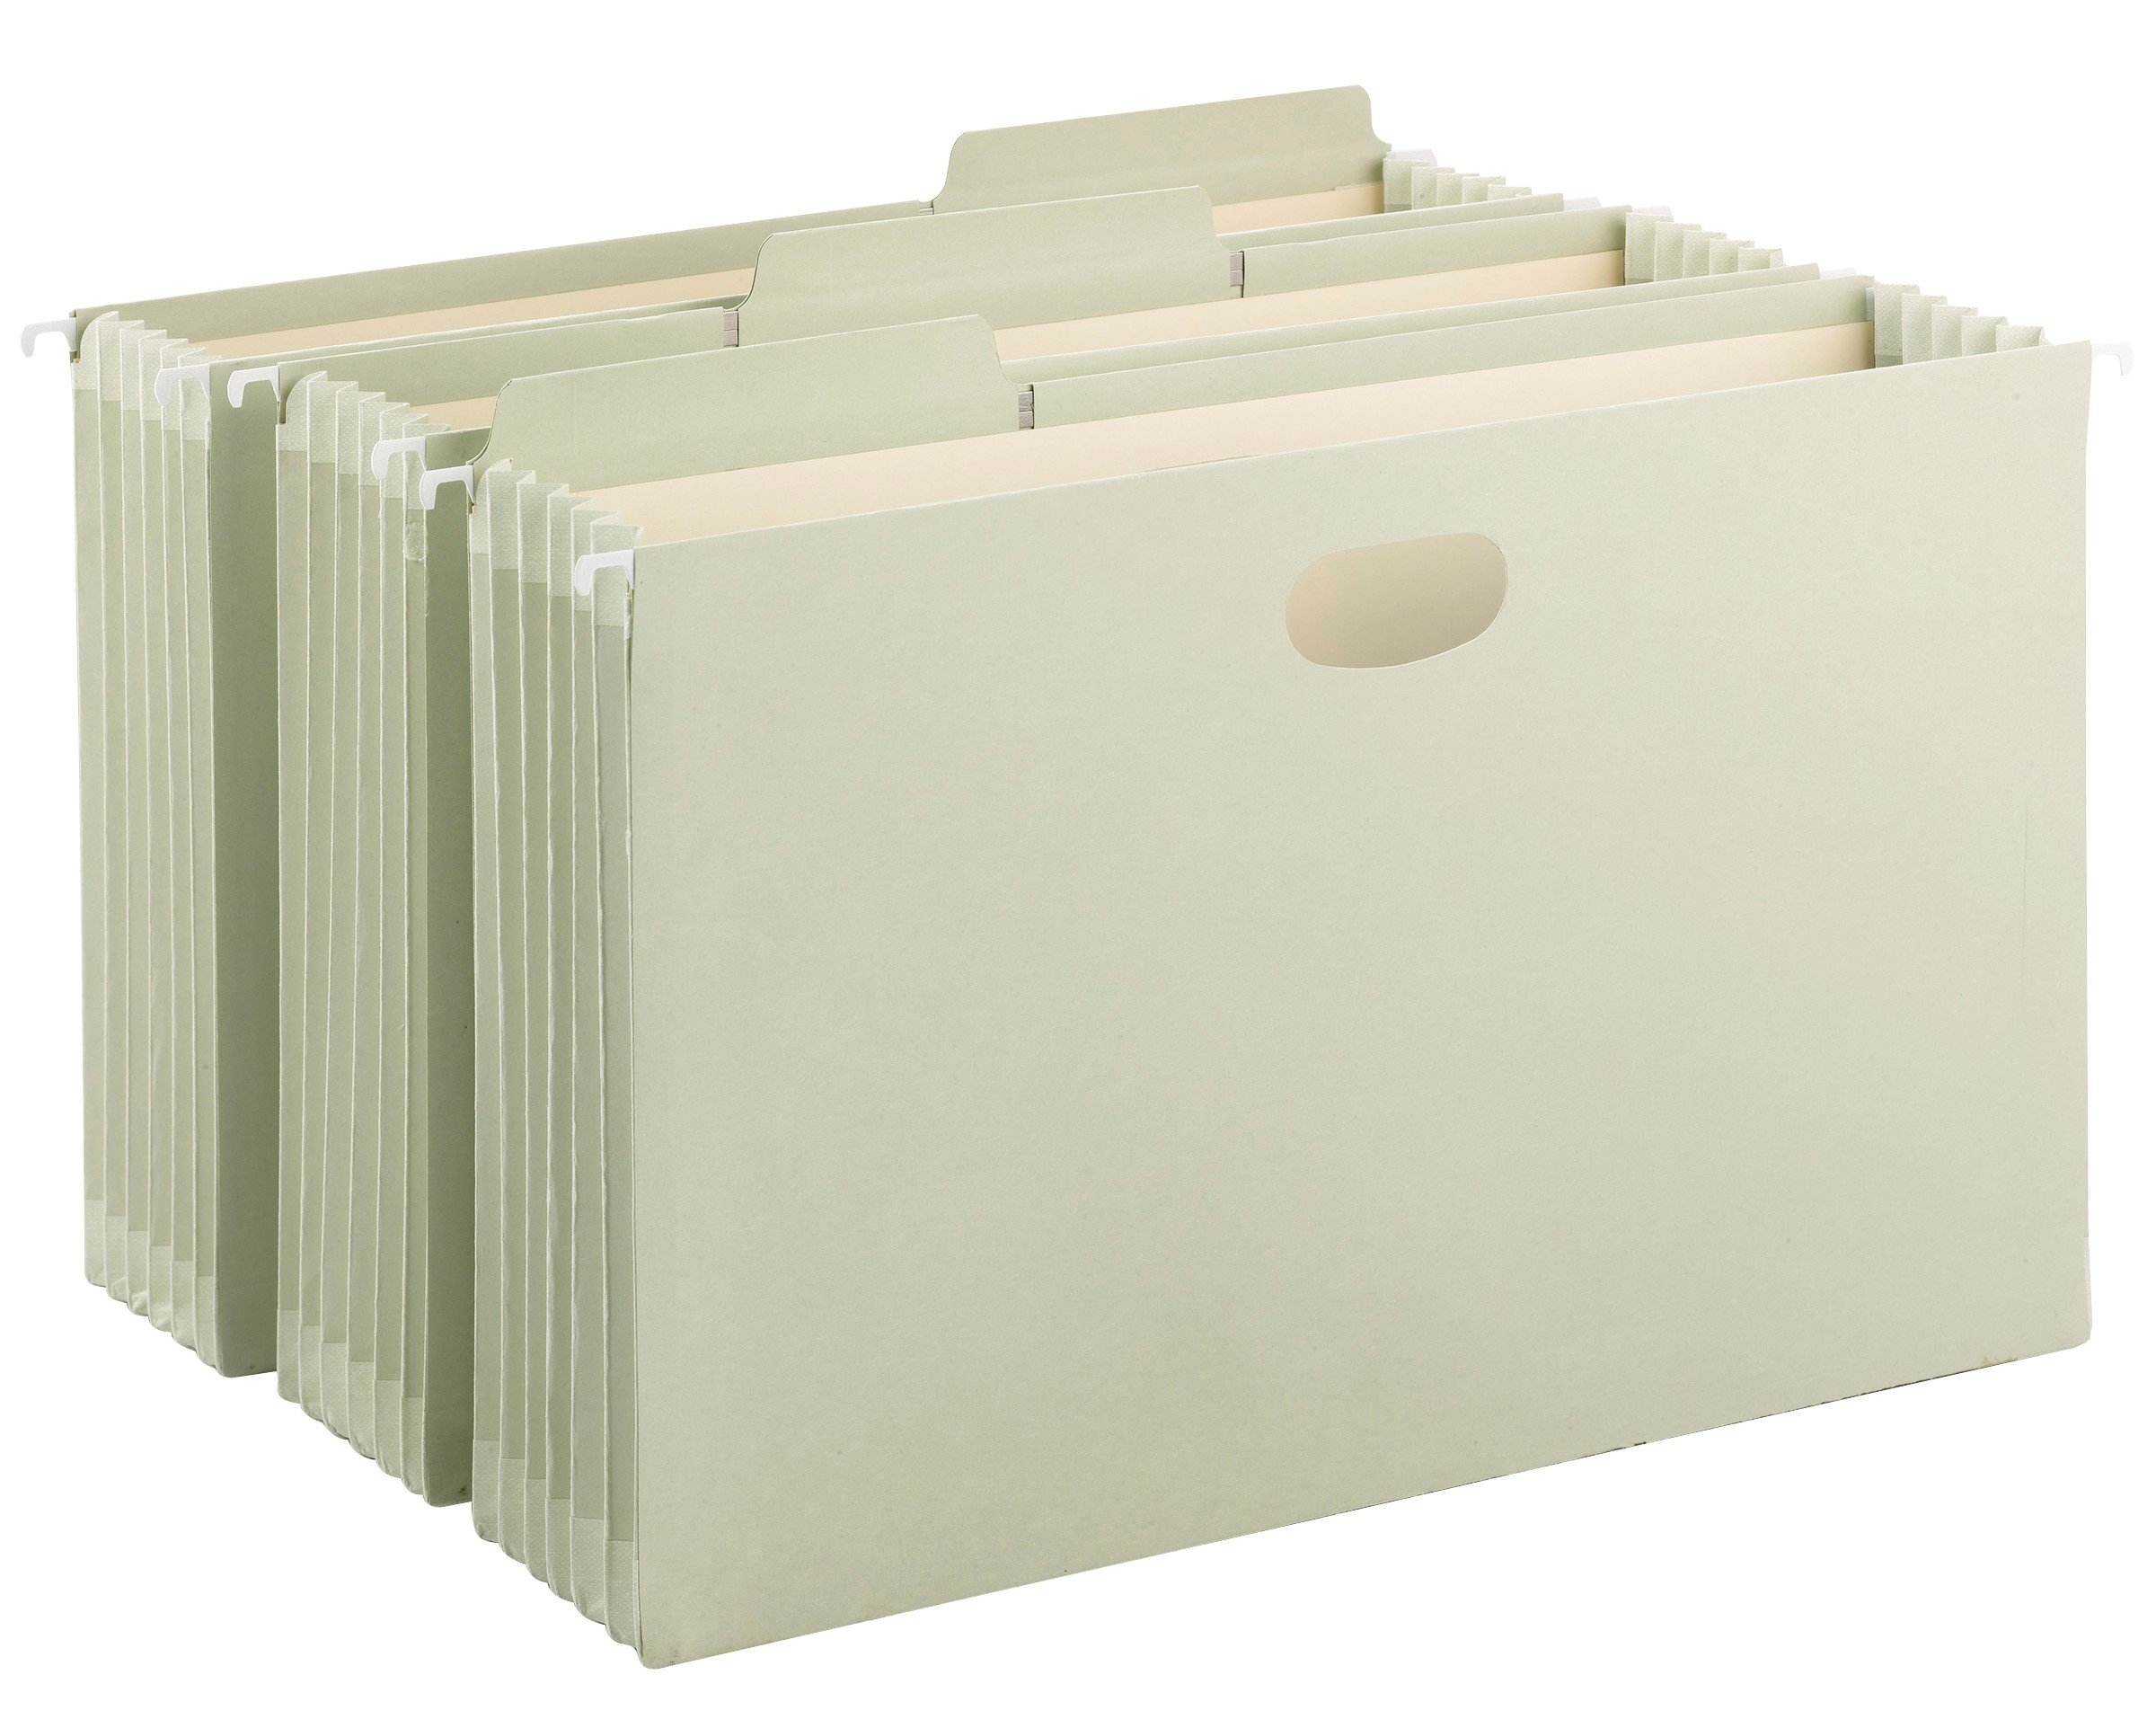 Smead FasTab Hanging File Pocket with TUFF Construction and Full-Height Gusset, 5-1/4'' Expansion, 1/3-Cut Built-in Tabs, Legal Size, Moss, 9 per Box (64324)